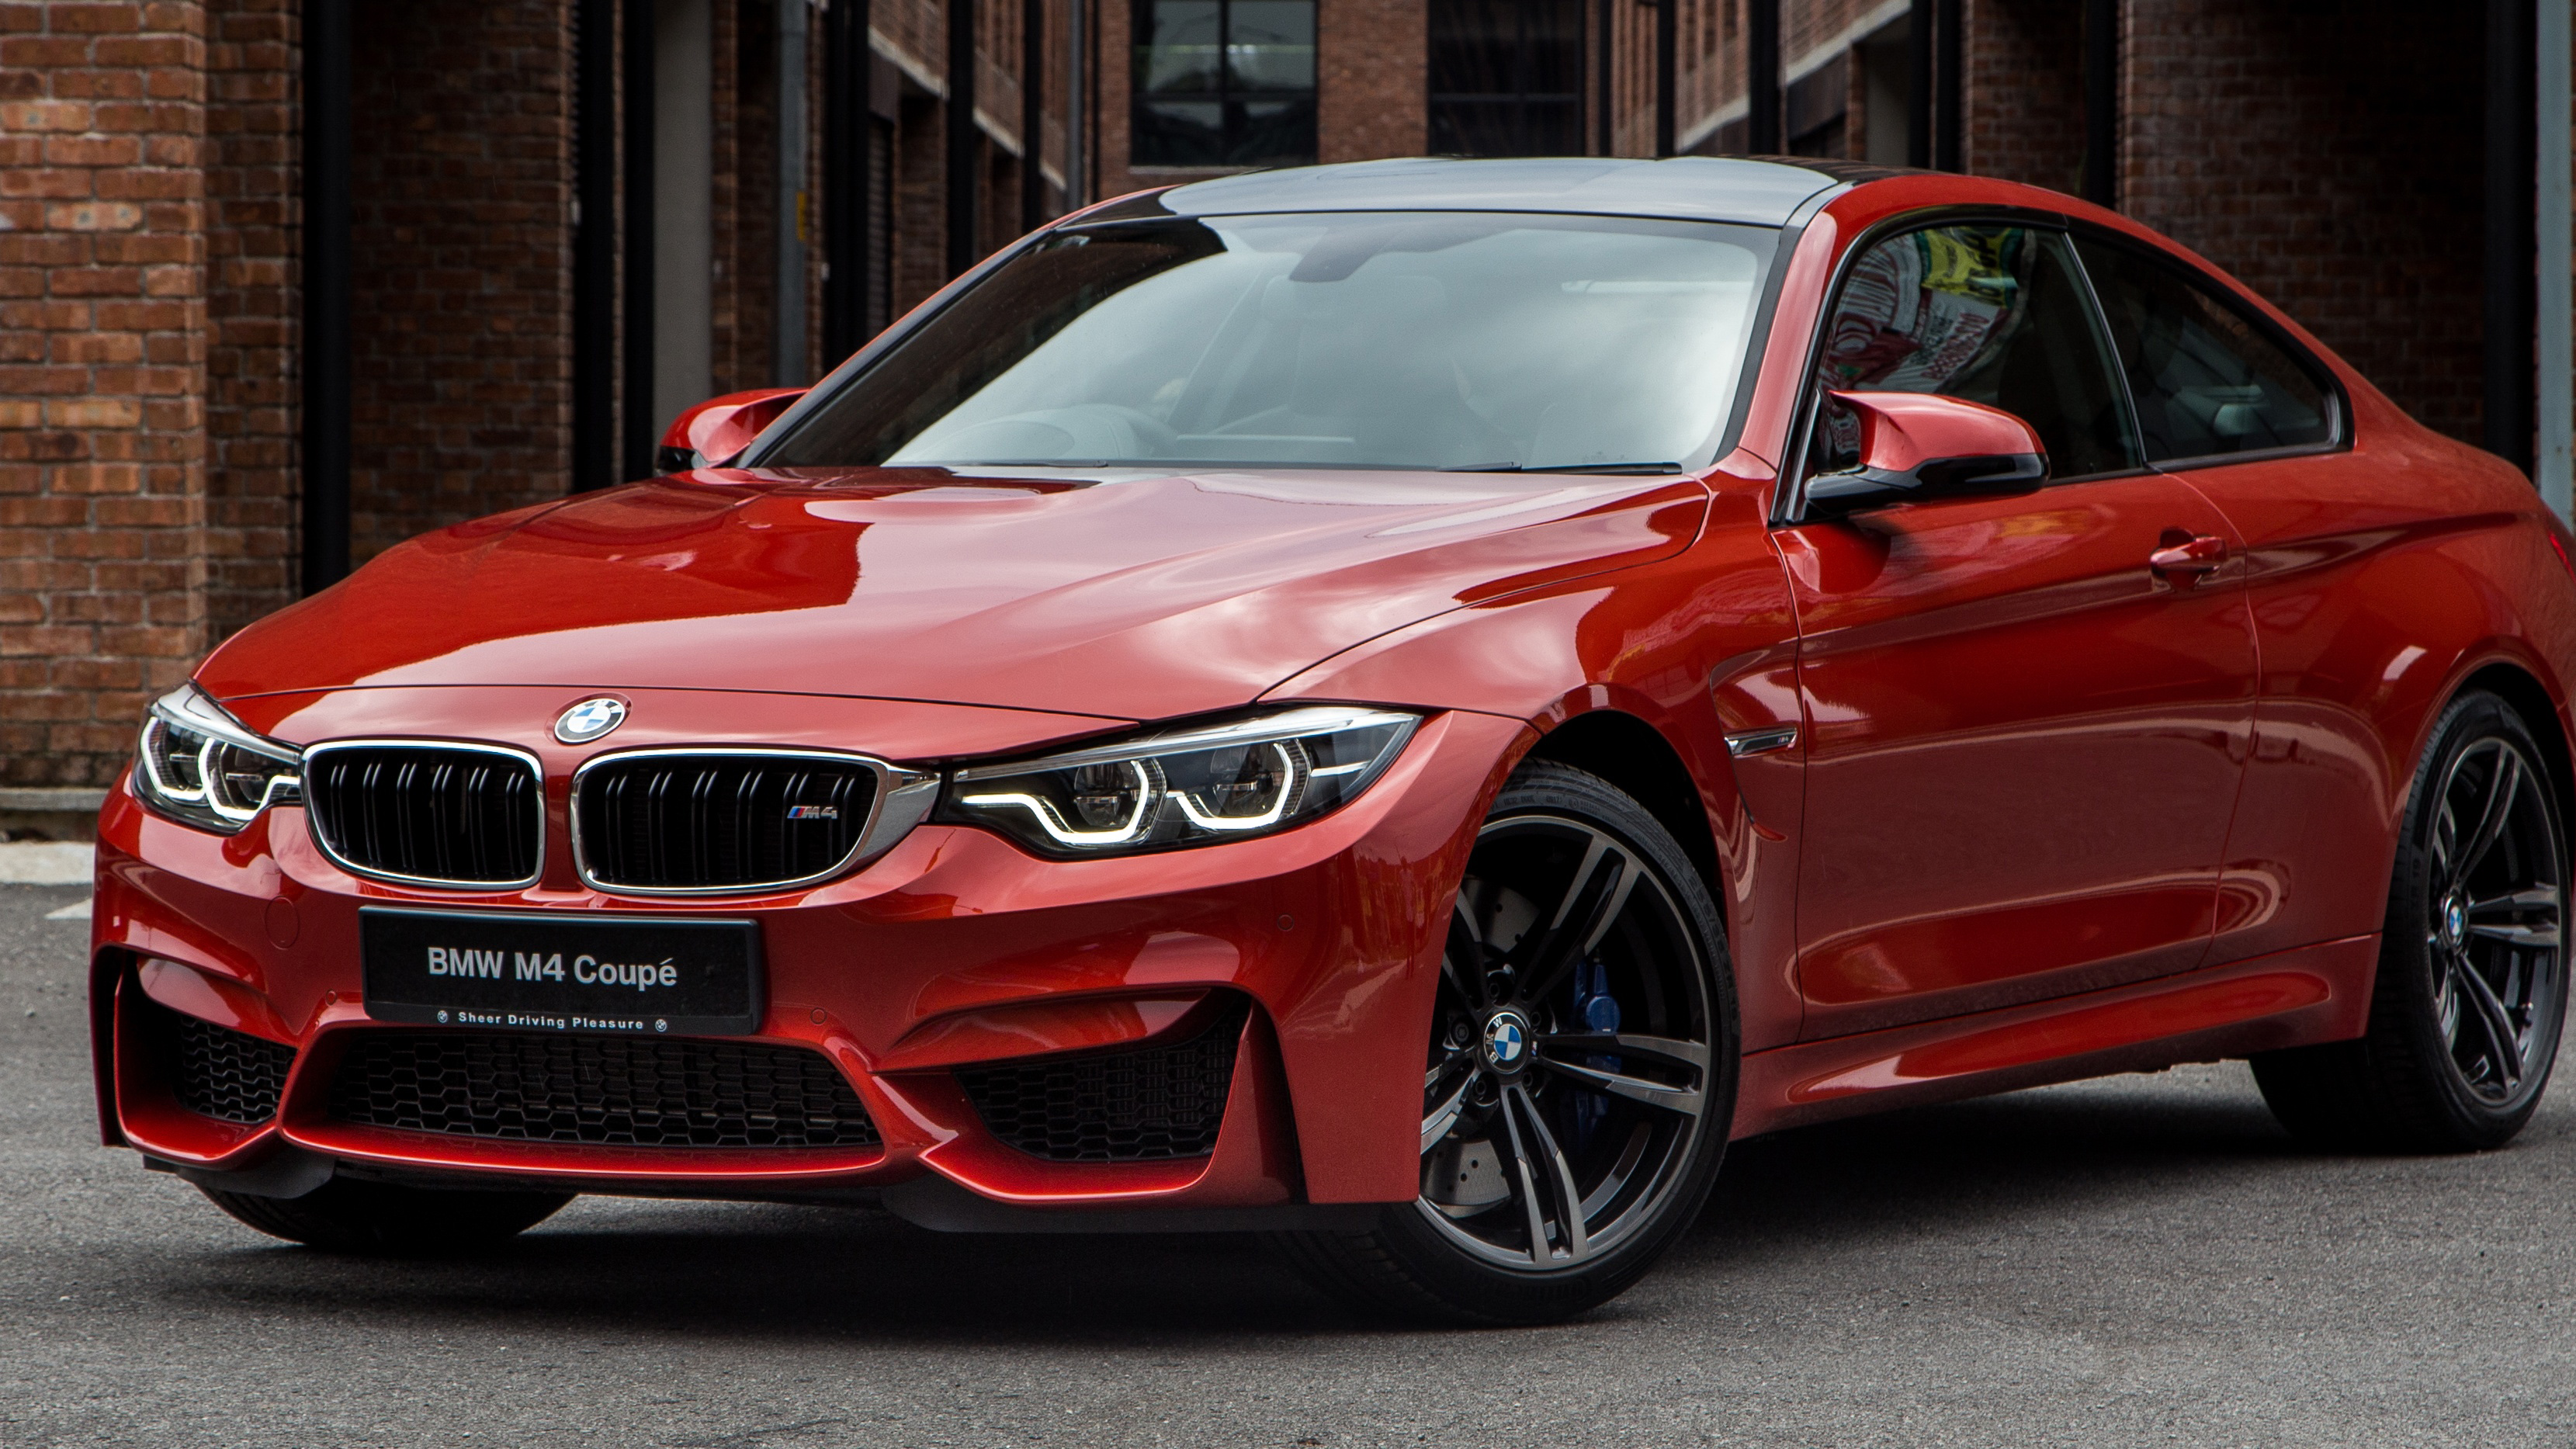 2017 bmw 4 series coupe lci f32 wallpaper hd car wallpapers id 7979. Black Bedroom Furniture Sets. Home Design Ideas